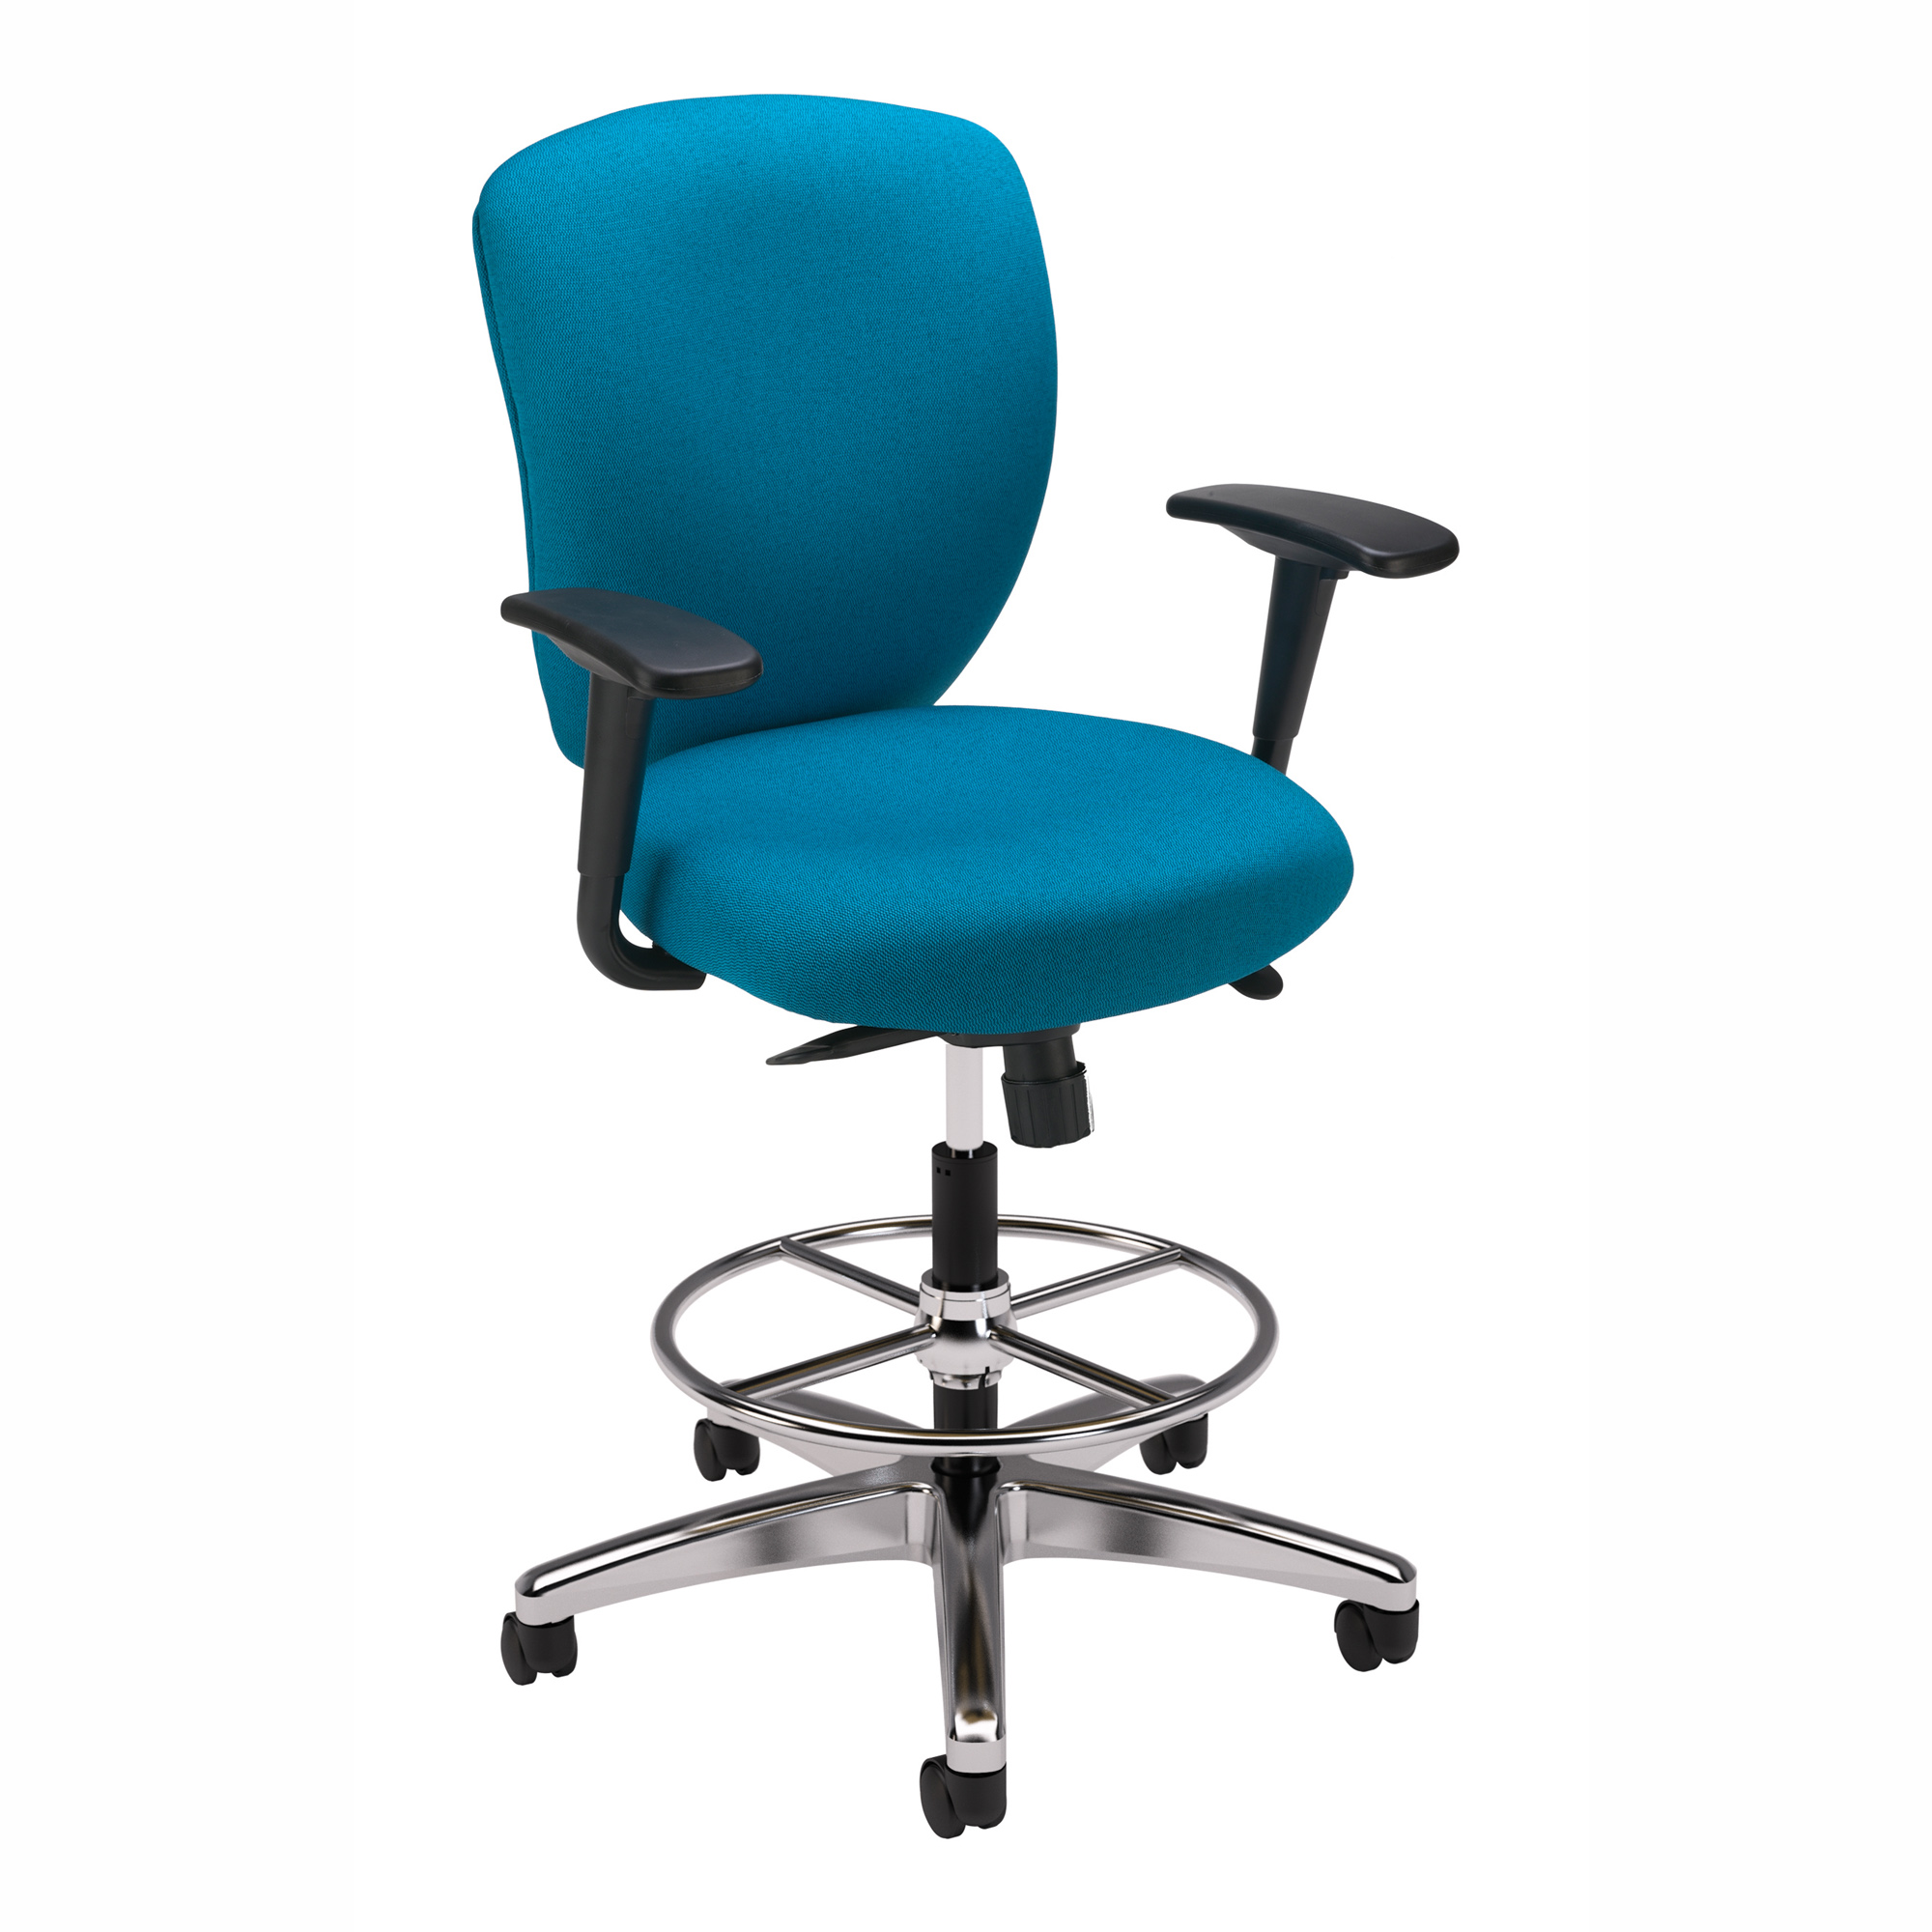 Sitonit Stools Common Sense Office Furniture